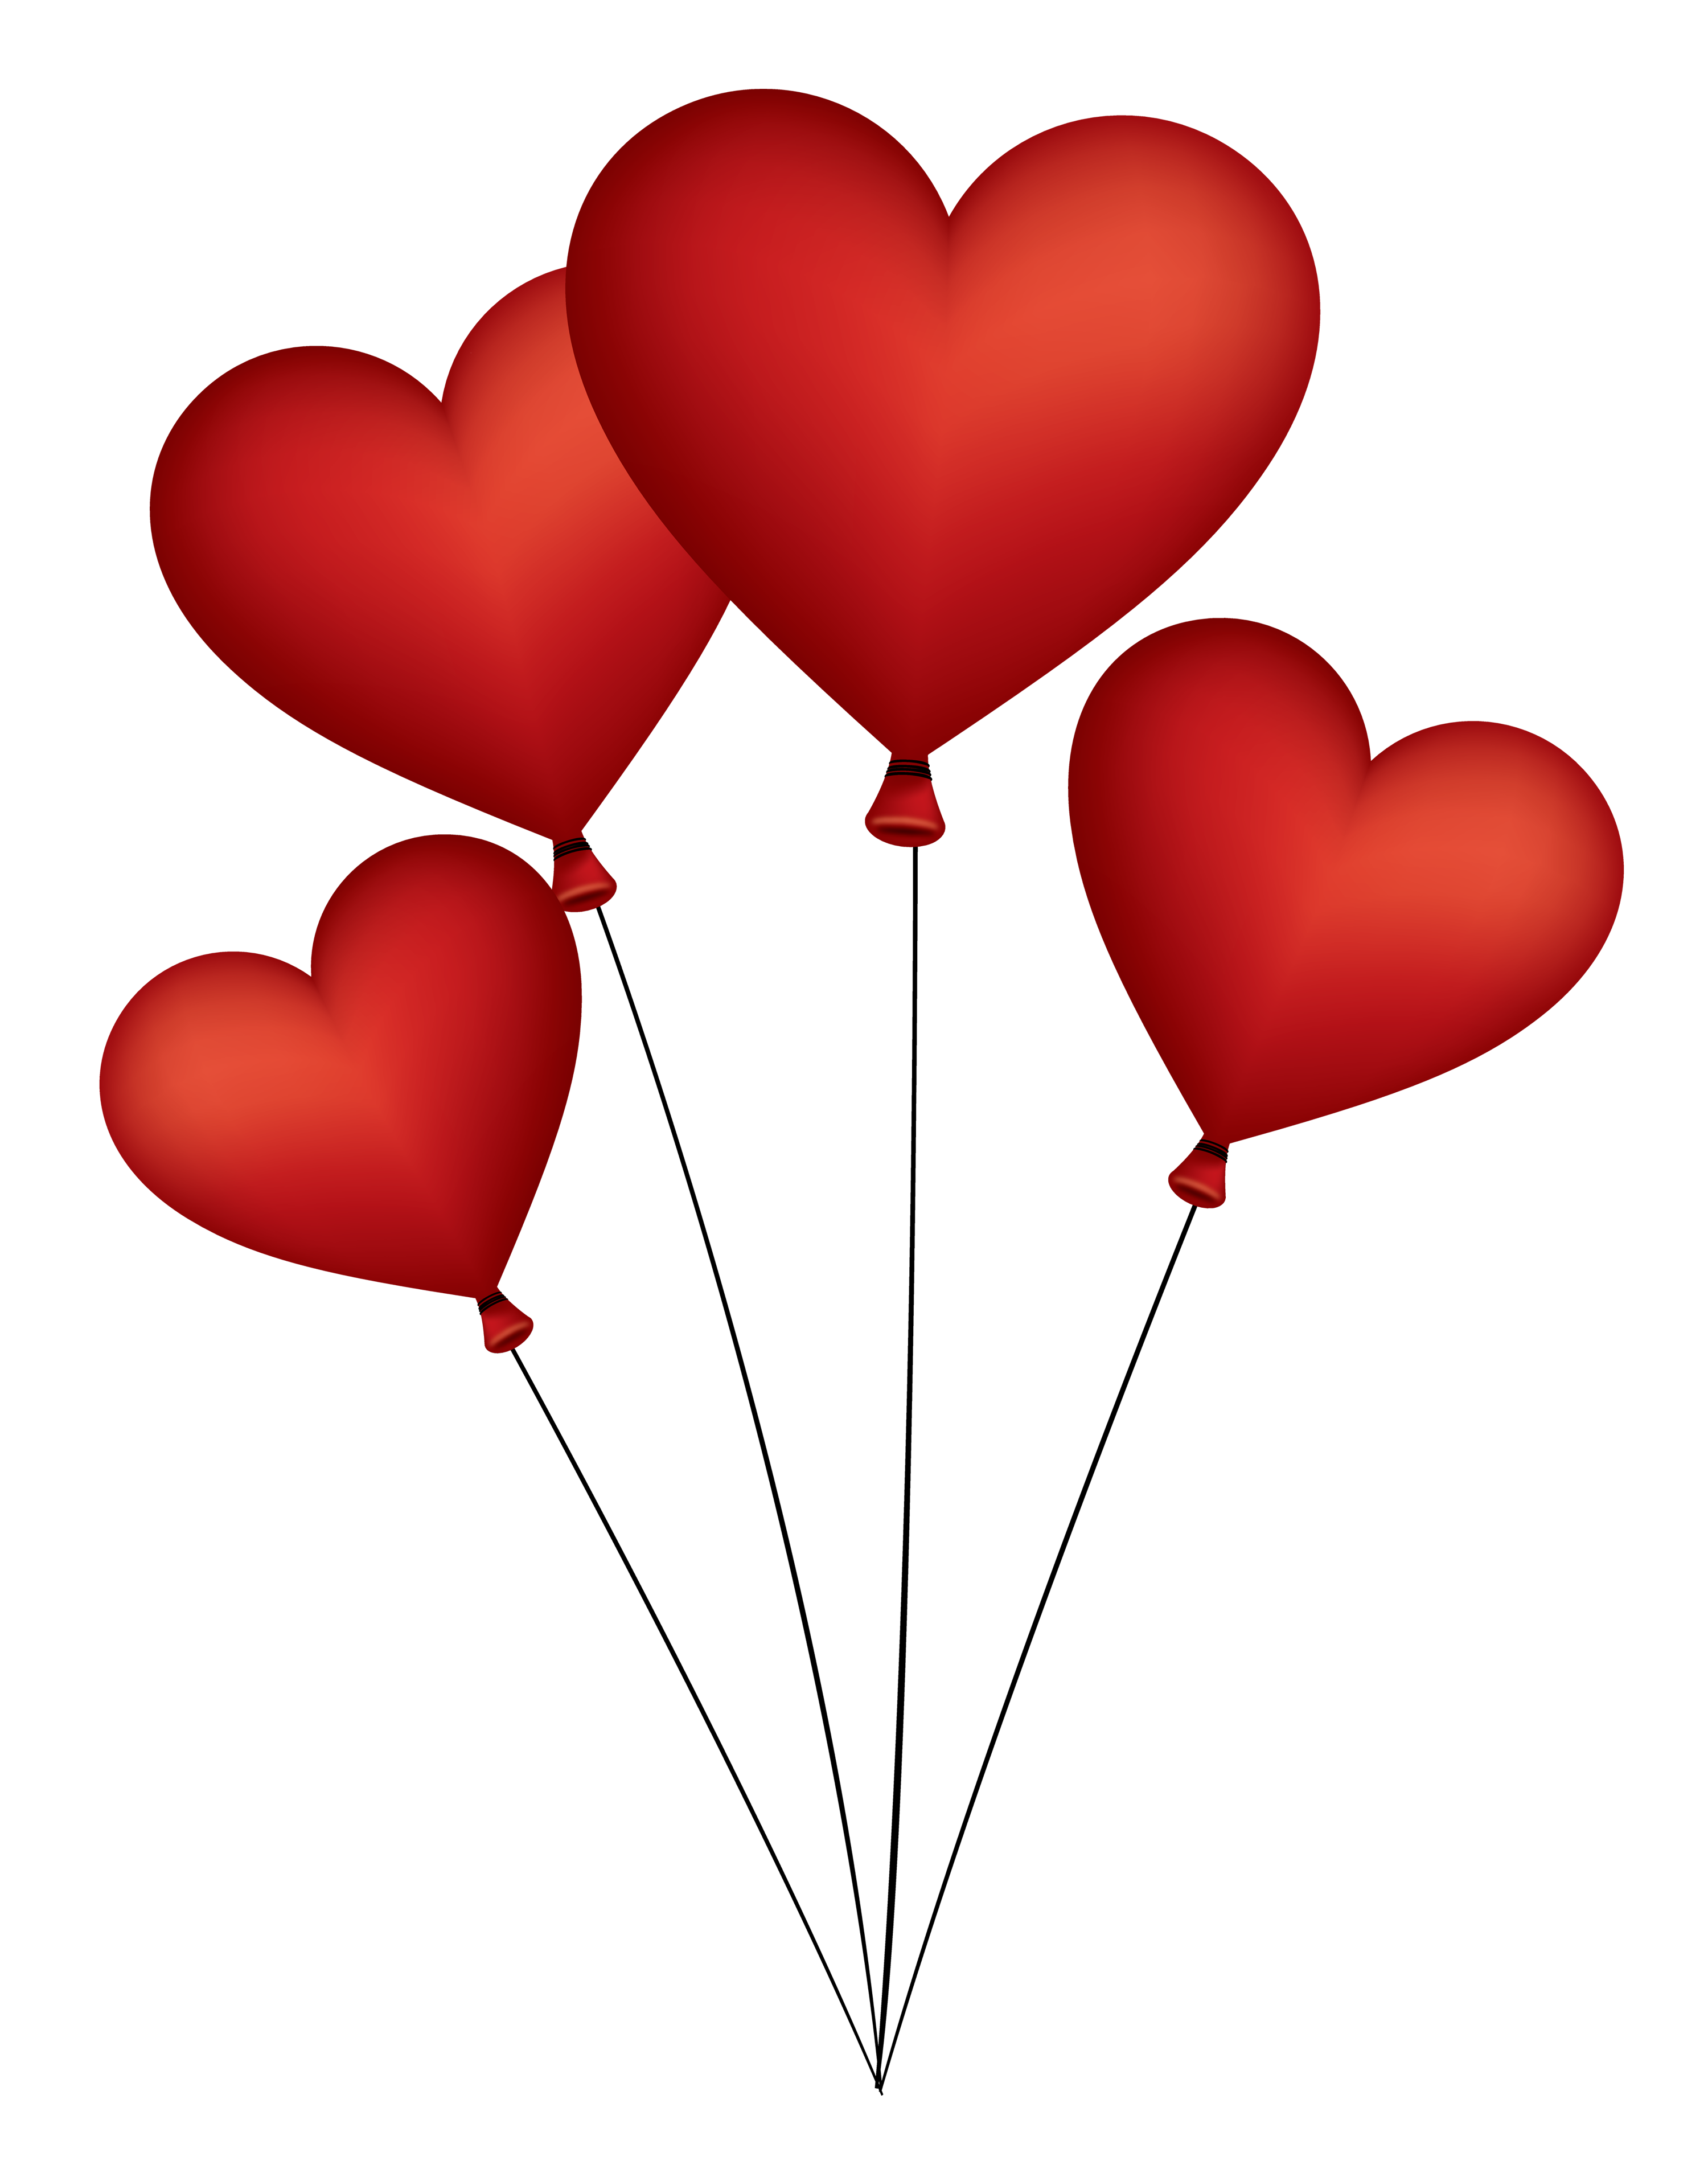 Heart Balloon Png Image Pngpix